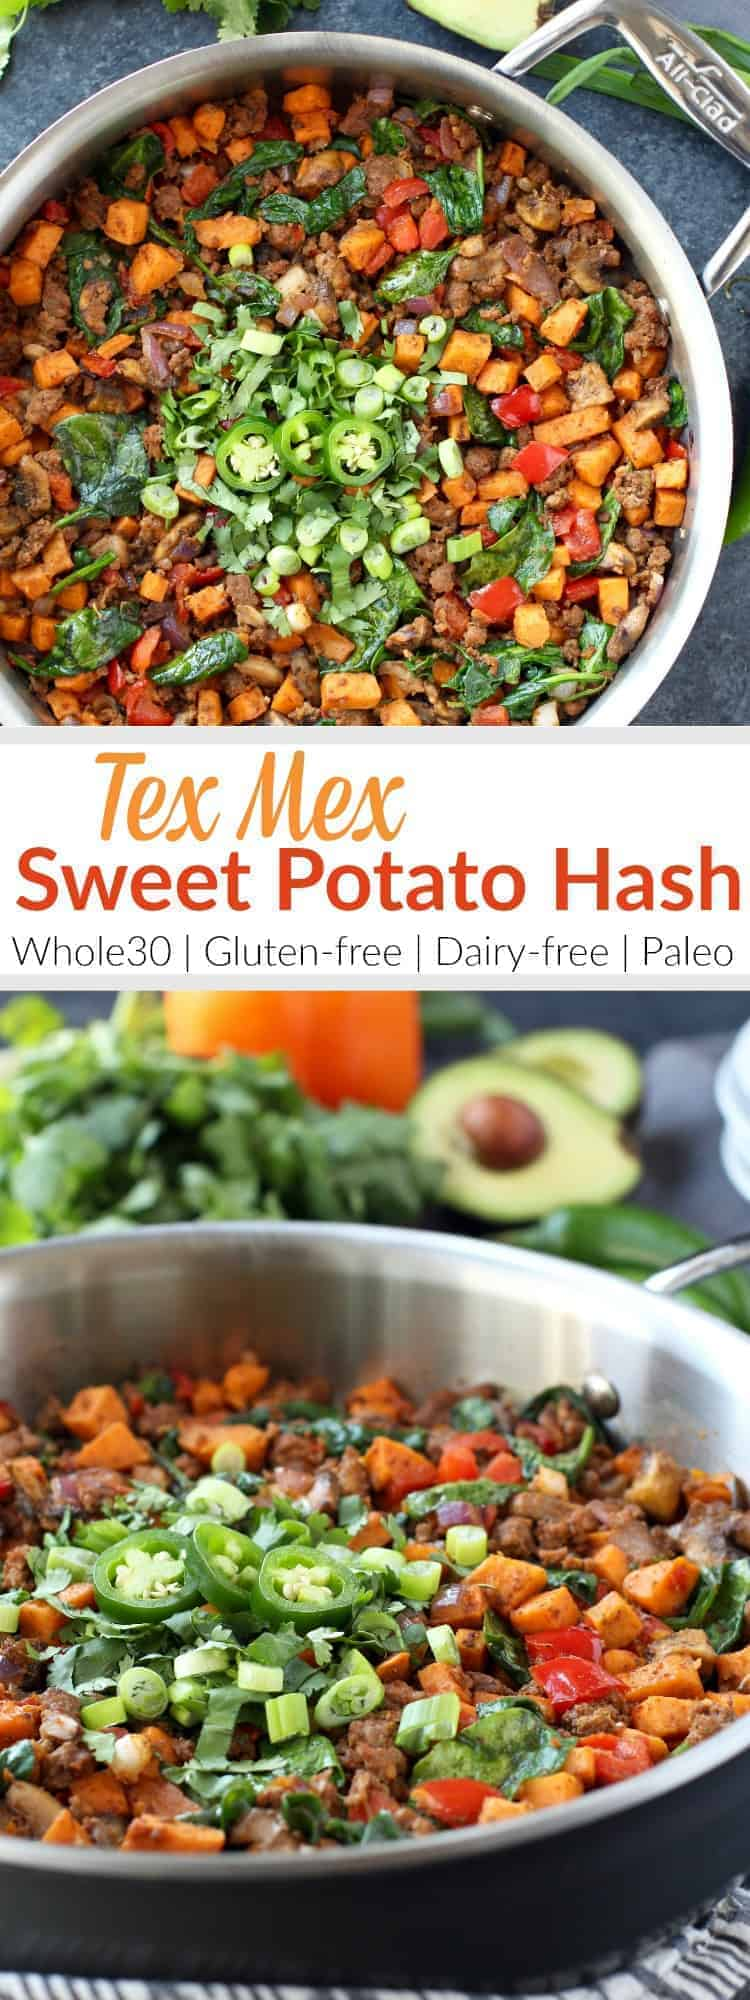 Sweet Potato Tex Mex Hash pin